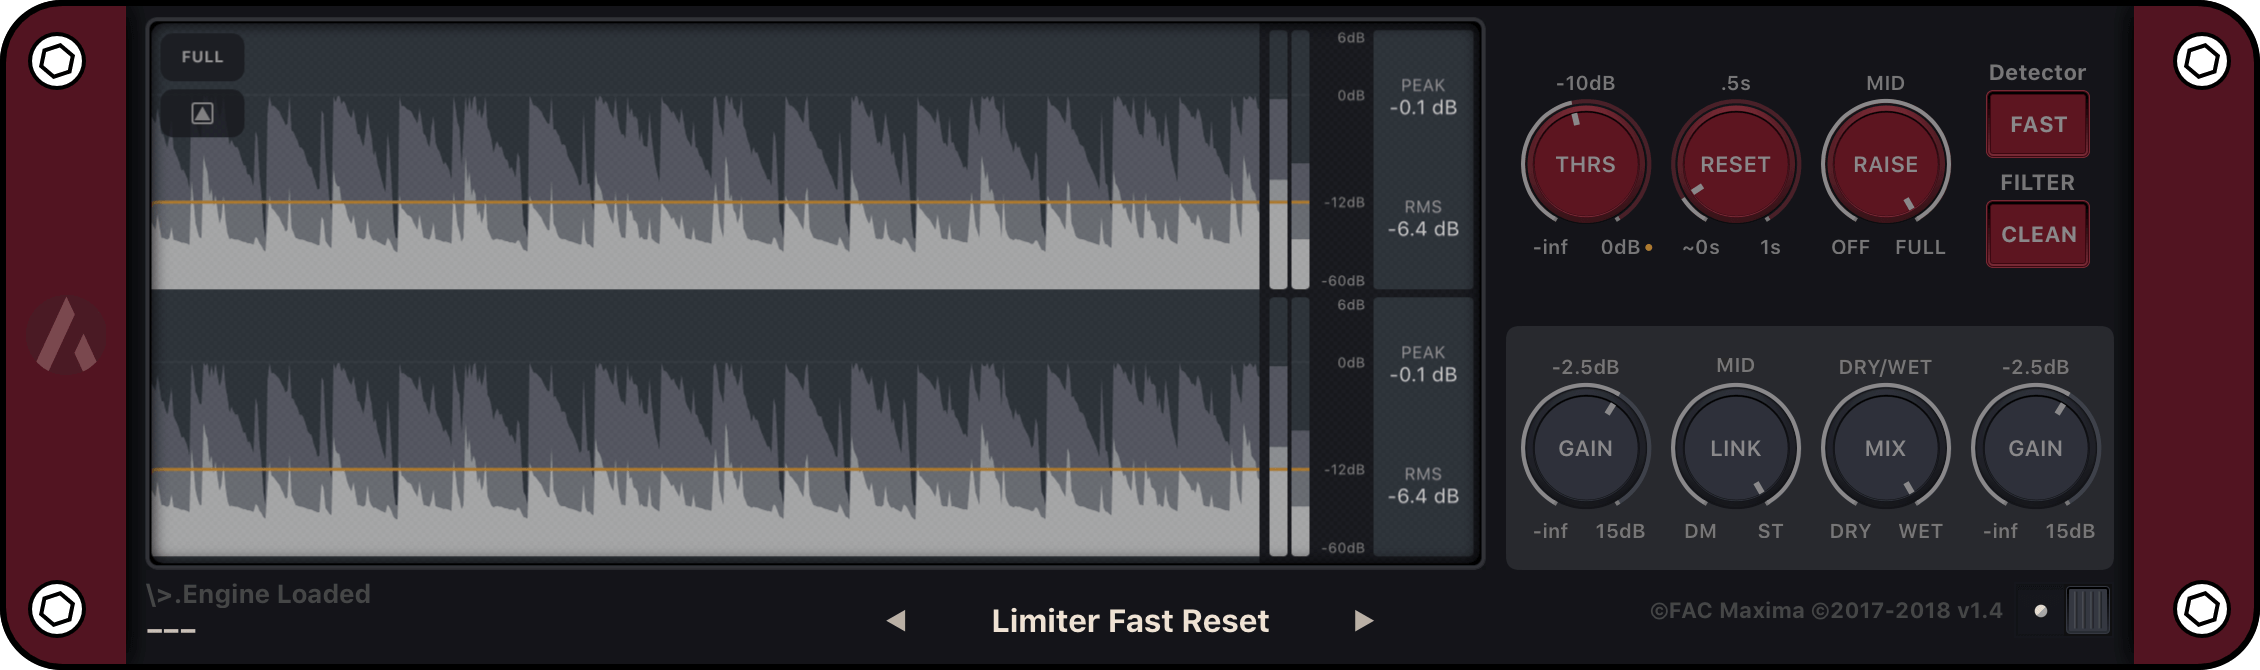 Fac Maxima Auv3 Plugin Fred Anton Corvest Logic Pro X Diagram Following The Below Sound Flows From Left To Right Or Input Output